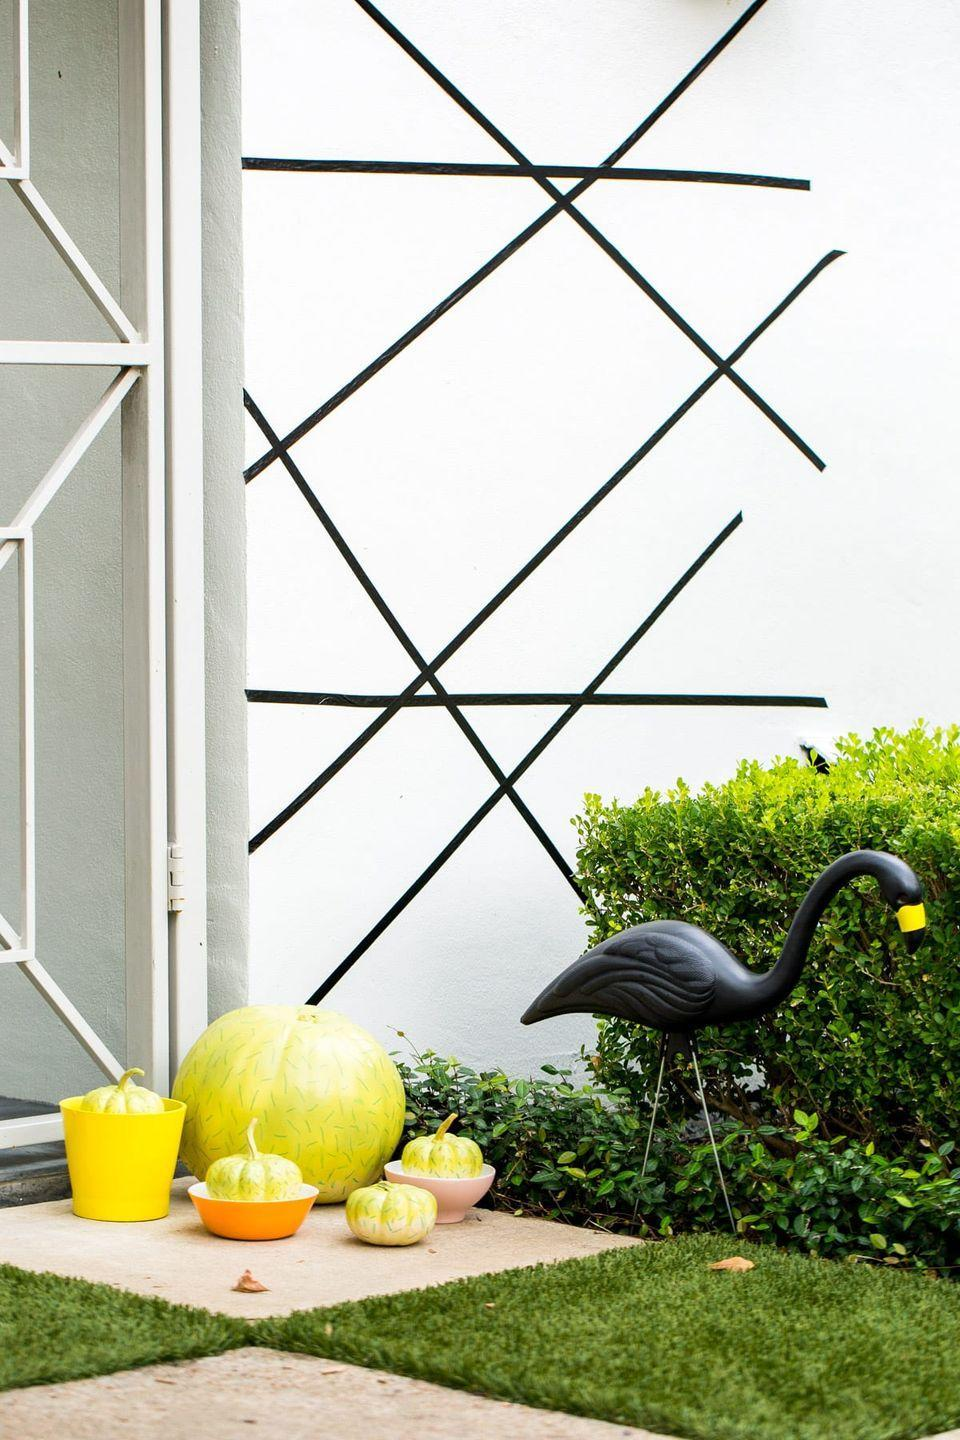 """<p>Mid-century design lovers, you're going to <em>really</em> appreciate this idea: Grab a few midnight black flamingos—or paint your own—to give your lawn a chic, Halloween-ified vibe.</p><p><strong>Get the tutorial at <a href=""""https://sugarandcloth.com/palm-springs-inspired-halloween-decor/"""" rel=""""nofollow noopener"""" target=""""_blank"""" data-ylk=""""slk:Sugar and Cloth"""" class=""""link rapid-noclick-resp"""">Sugar and Cloth</a>. </strong></p><p><strong><a class=""""link rapid-noclick-resp"""" href=""""https://go.redirectingat.com?id=74968X1596630&url=https%3A%2F%2Fwww.walmart.com%2Fip%2FGiftExpress-Set-of-2-Small-Pink-Flamingo-Yard-Ornament-Mini-Lawn-Flamingo-Ornaments-Pink-Flamingo-Garden-Yard-Decor-2%2F750479454&sref=https%3A%2F%2Fwww.thepioneerwoman.com%2Fholidays-celebrations%2Fg32894423%2Foutdoor-halloween-decorations%2F"""" rel=""""nofollow noopener"""" target=""""_blank"""" data-ylk=""""slk:SHOP LAWN FLAMINGOS"""">SHOP LAWN FLAMINGOS</a></strong></p>"""